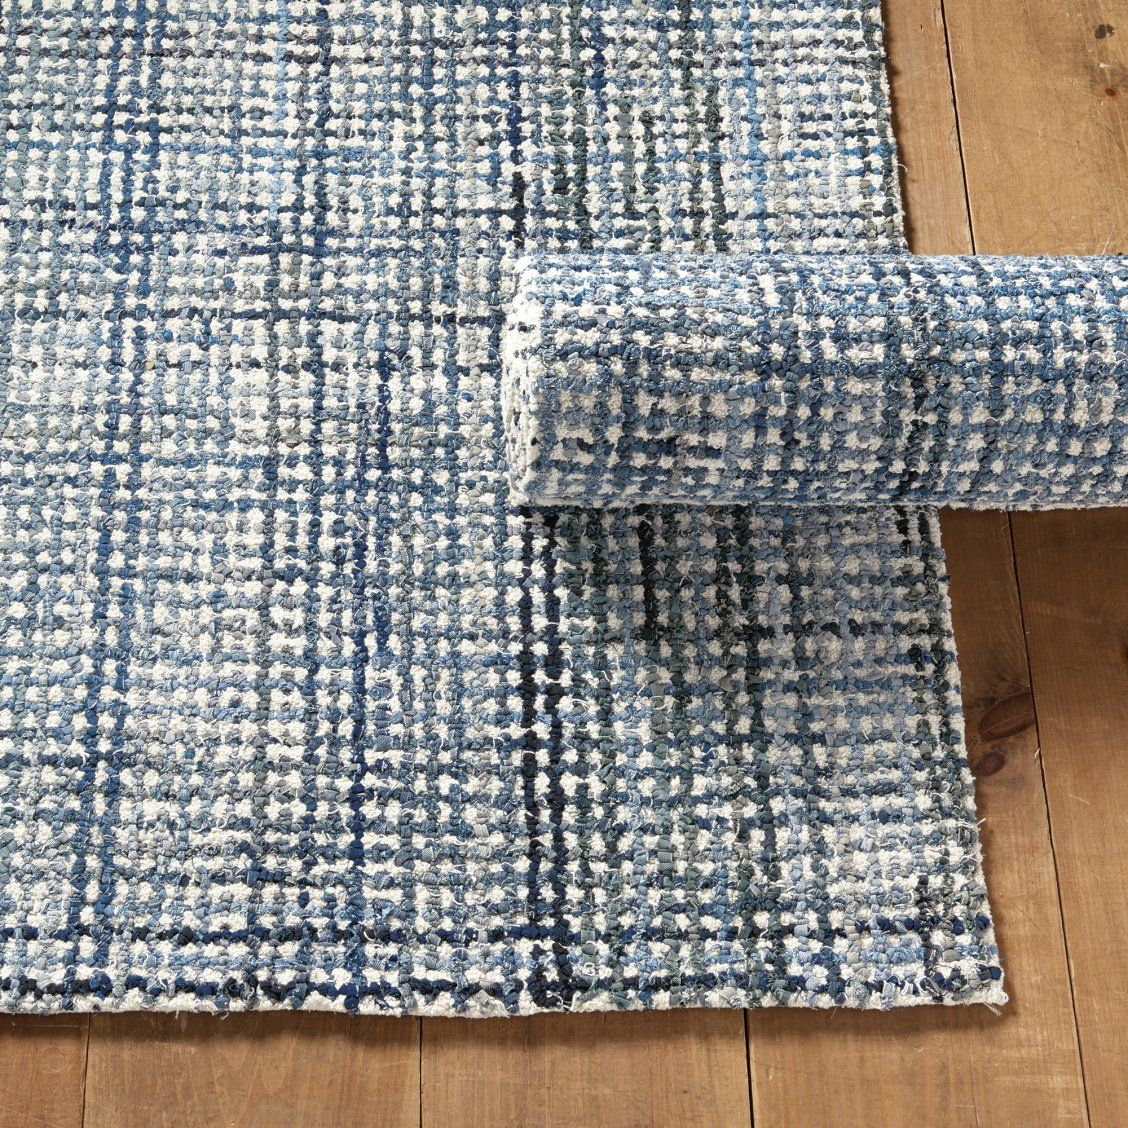 Mateo Hand Tufted Rug Hand Tufted Rugs Tufted Rug Rugs On Carpet